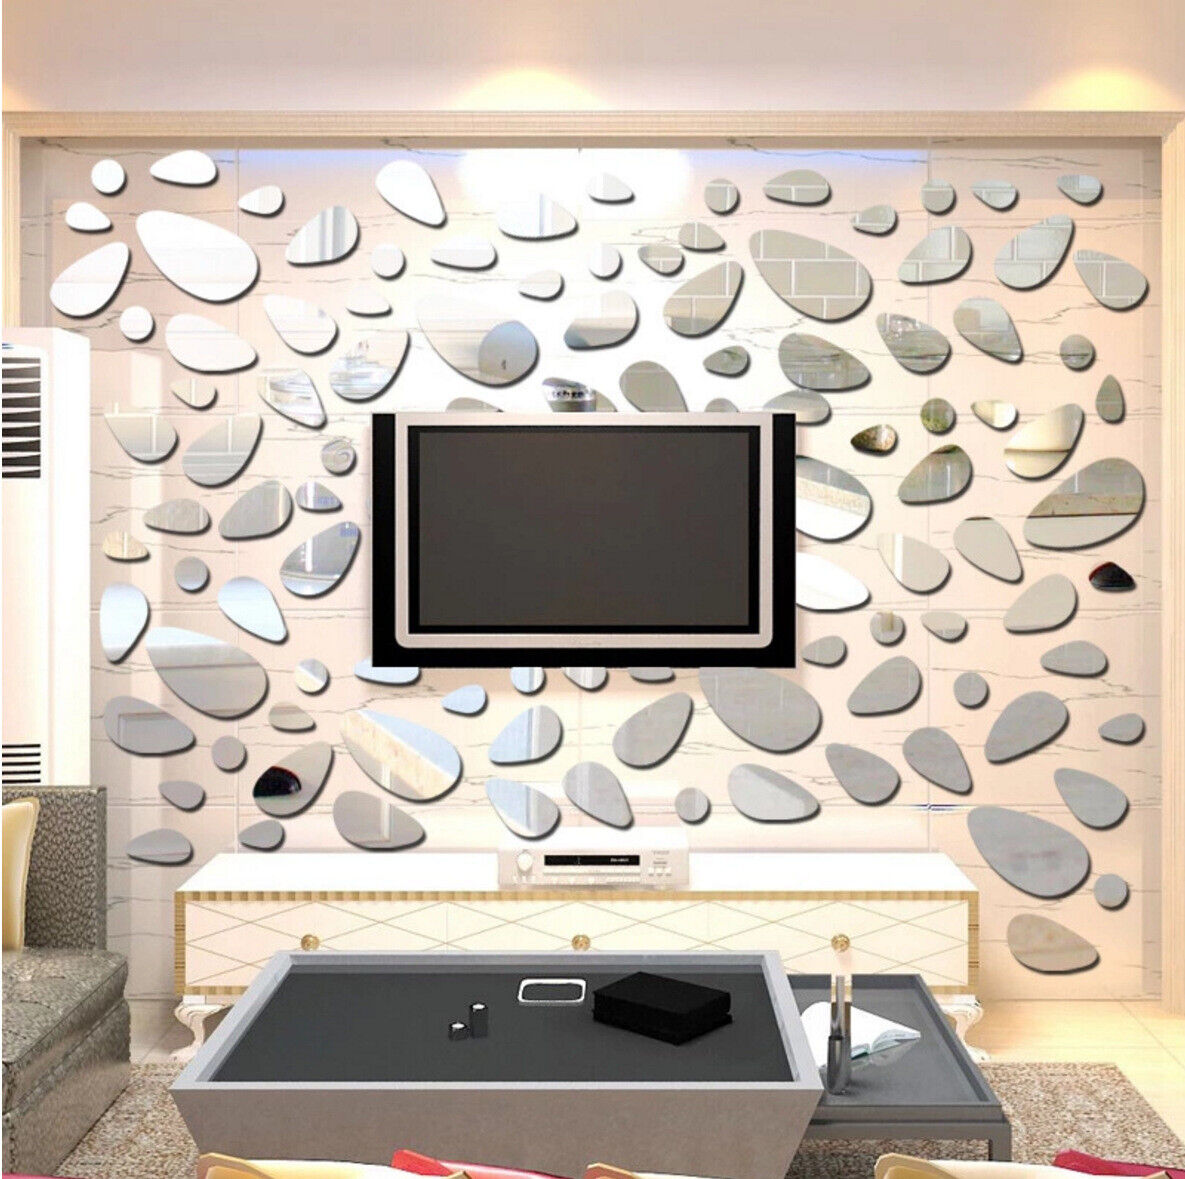 Home Decoration - 3D Wall Sticker Removable Mirror Cobblestone Shape Wall Decals Modern Home Decor